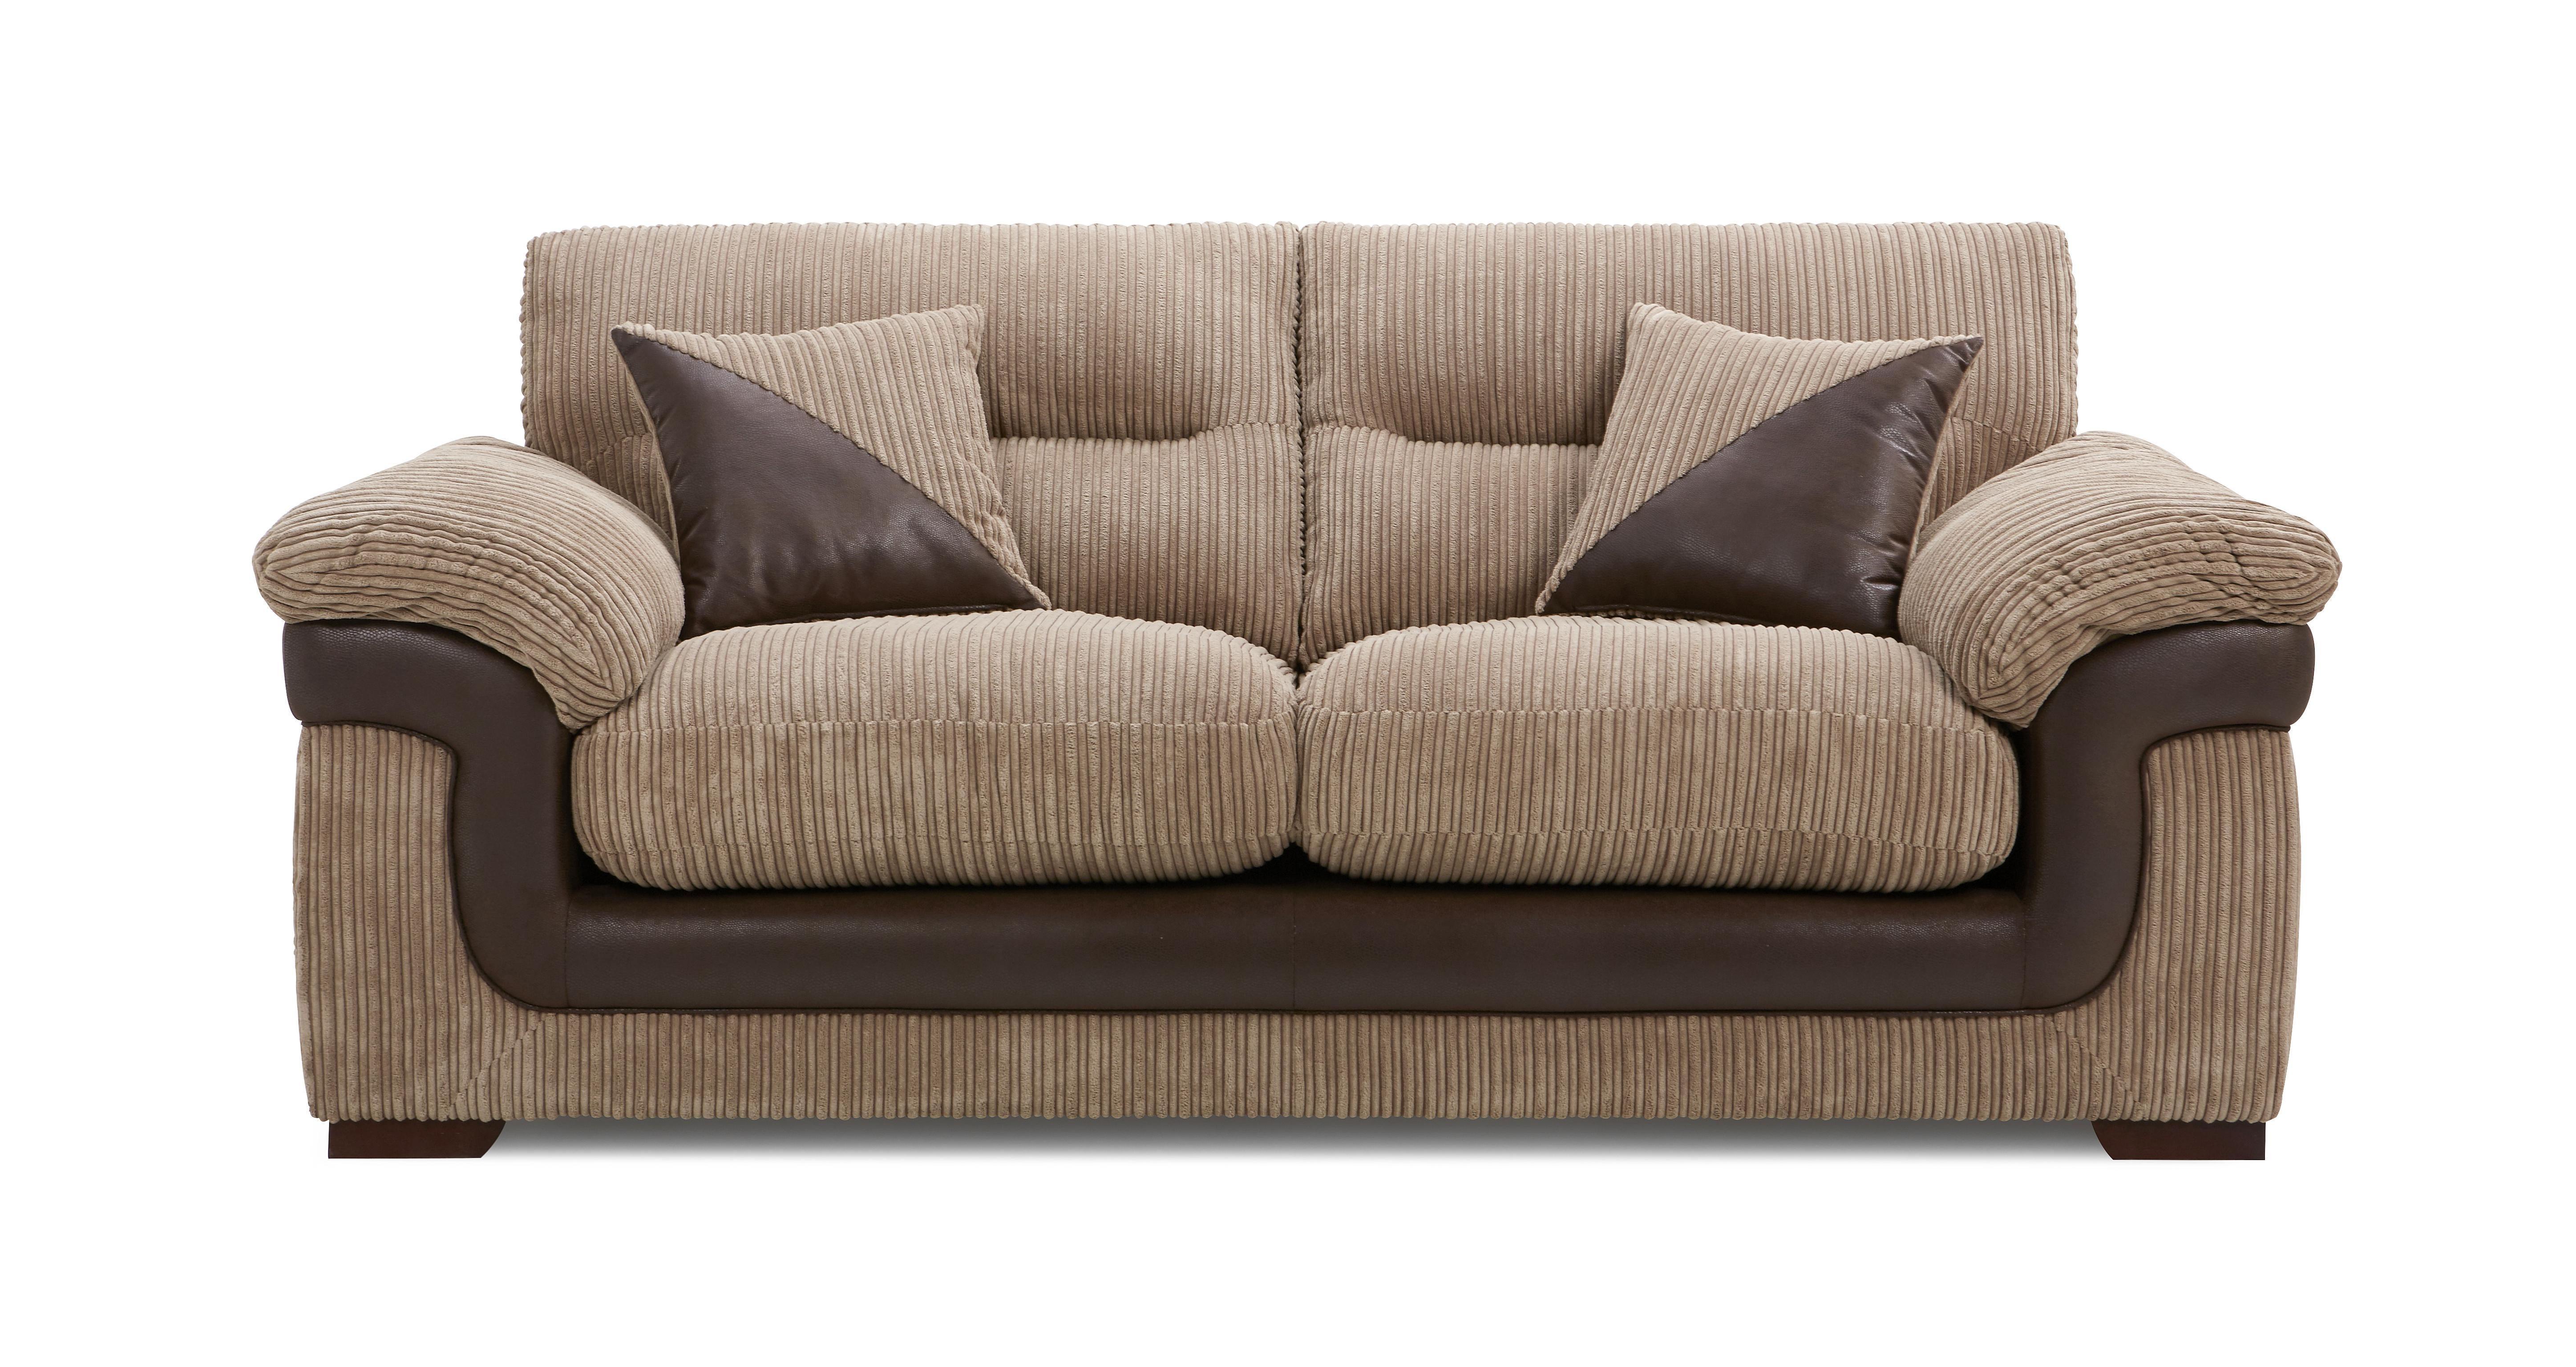 Who makes dfs sofas conceptstructuresllc who makes dfs sofas conceptstructuresllc com parisarafo Image collections